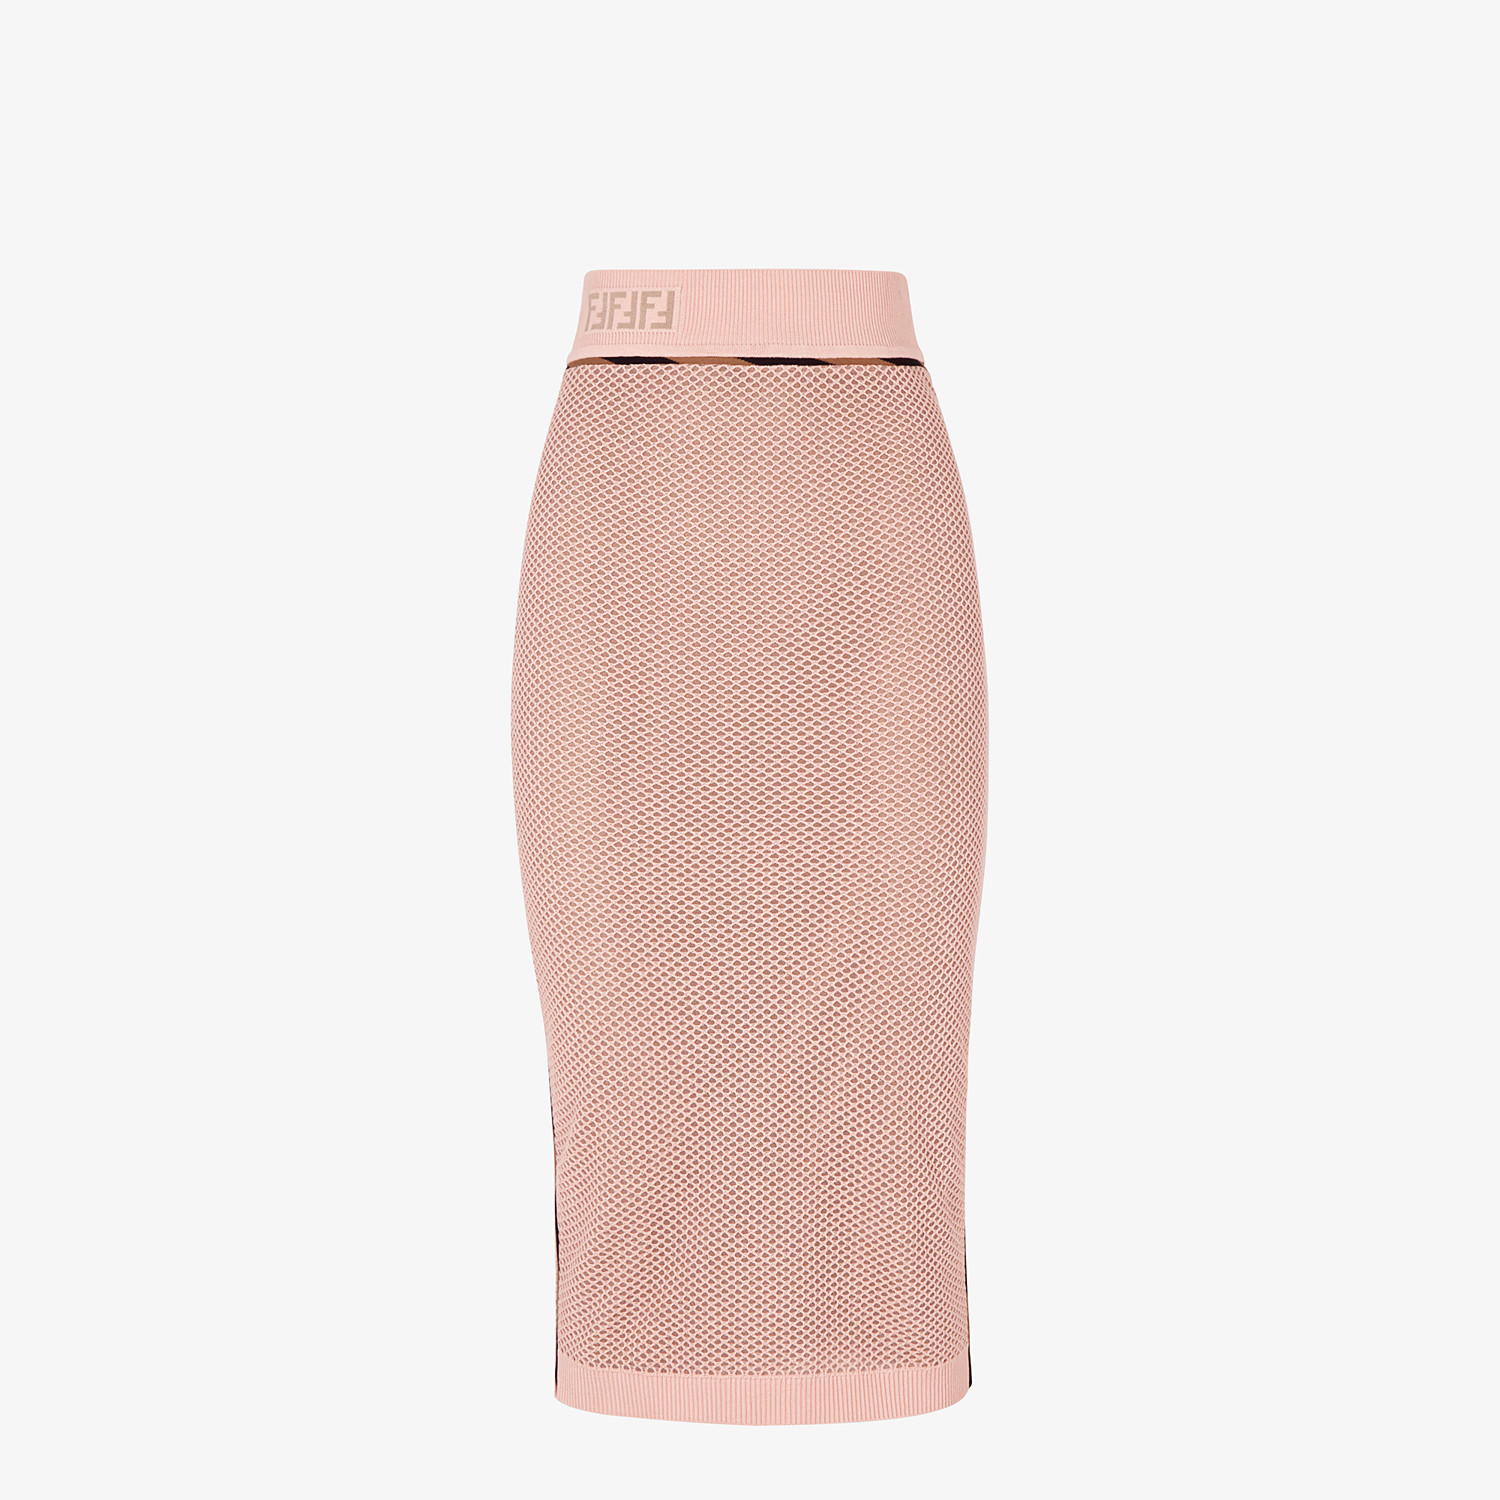 FENDI SKIRT - Pink mesh skirt - view 1 detail